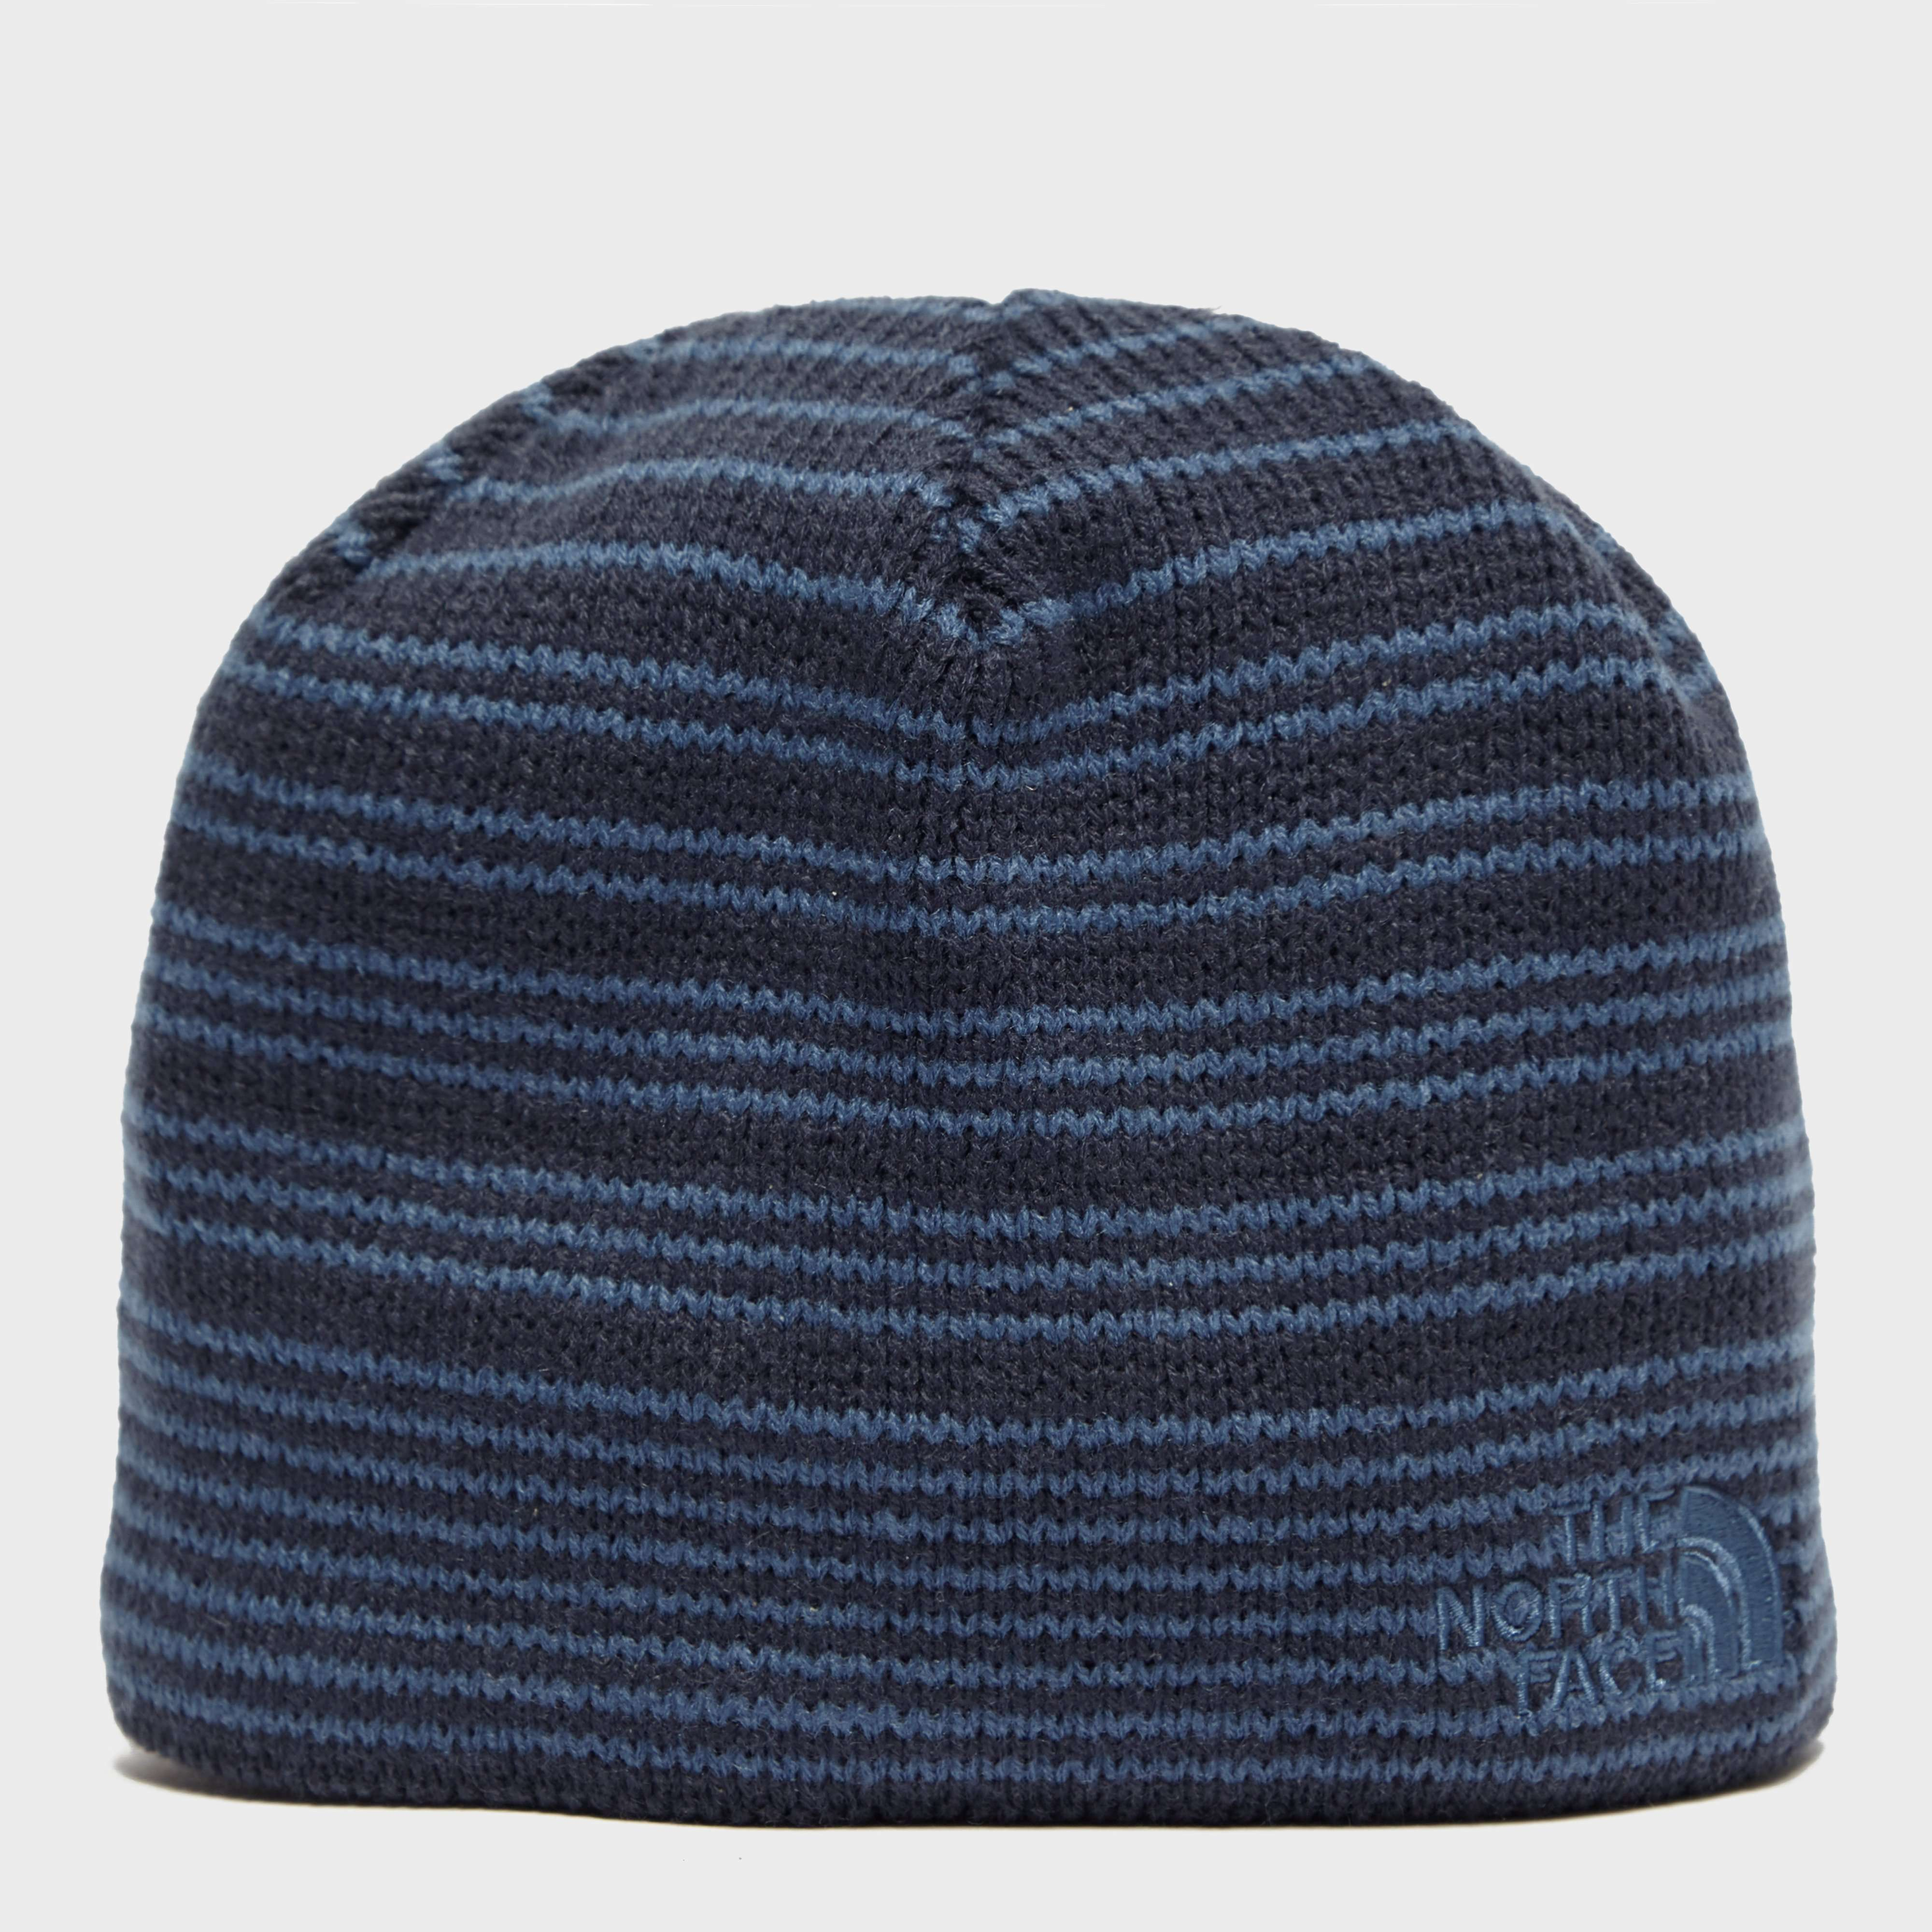 THE NORTH FACE Men's Bones Beanie